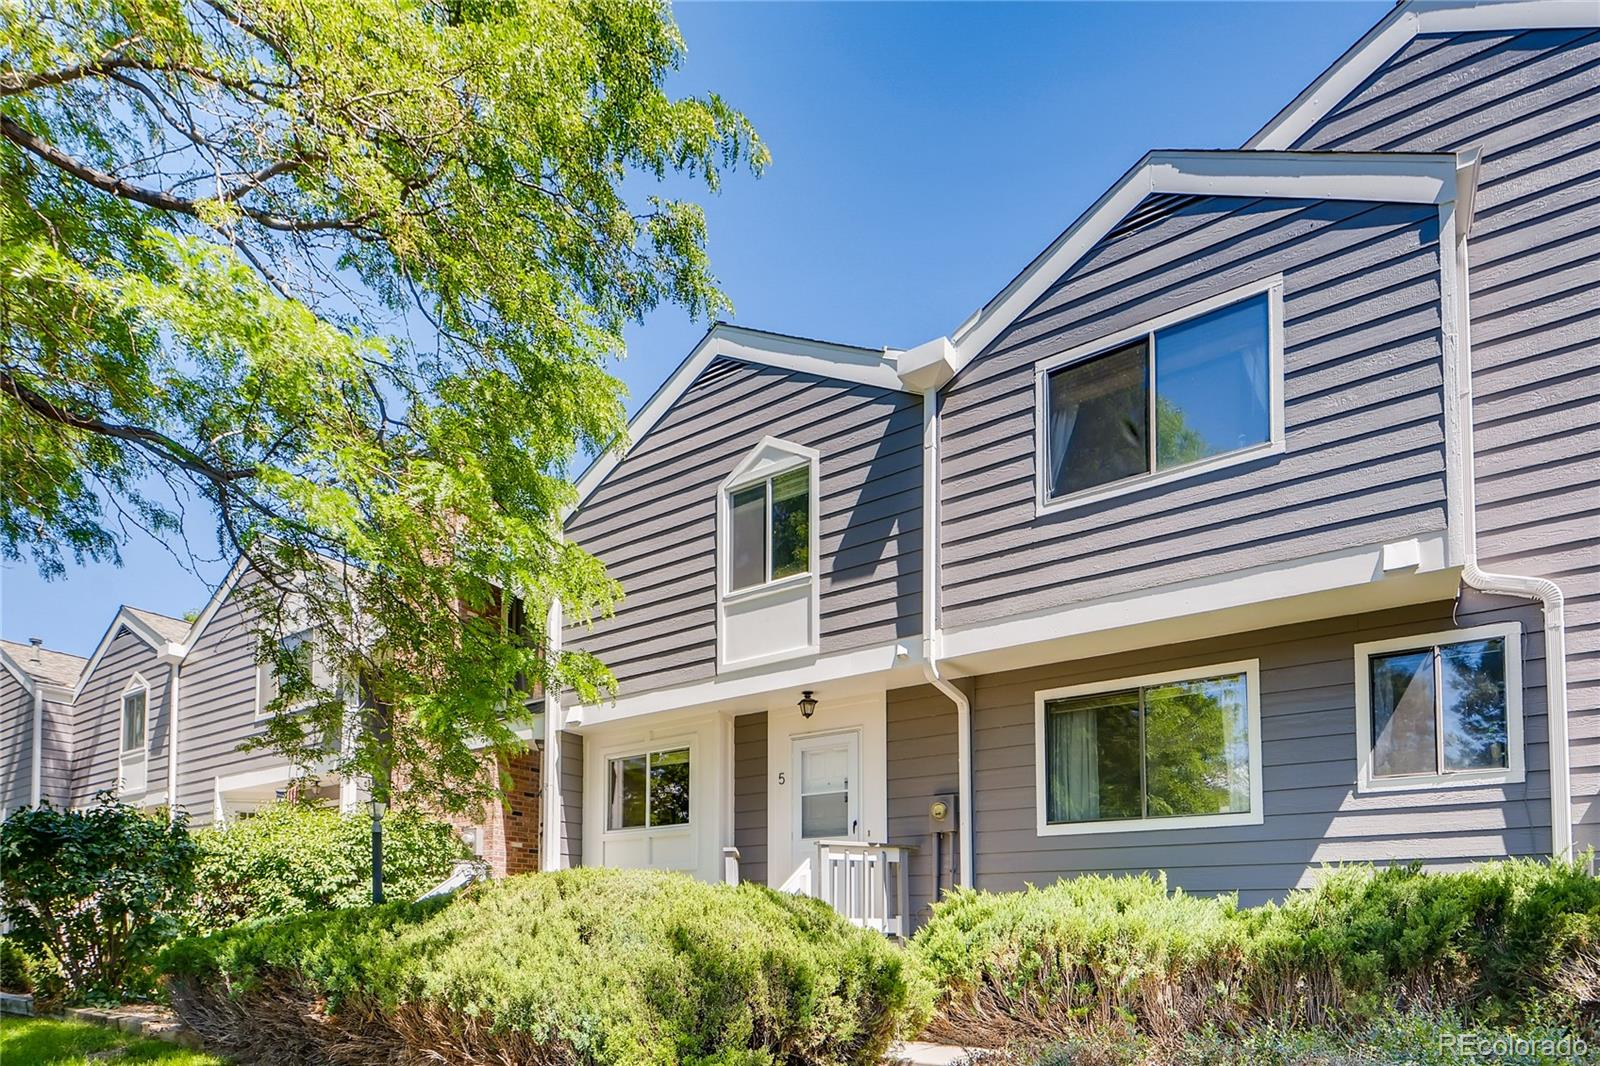 6895 W 84th Way #5 Property Photo - Arvada, CO real estate listing